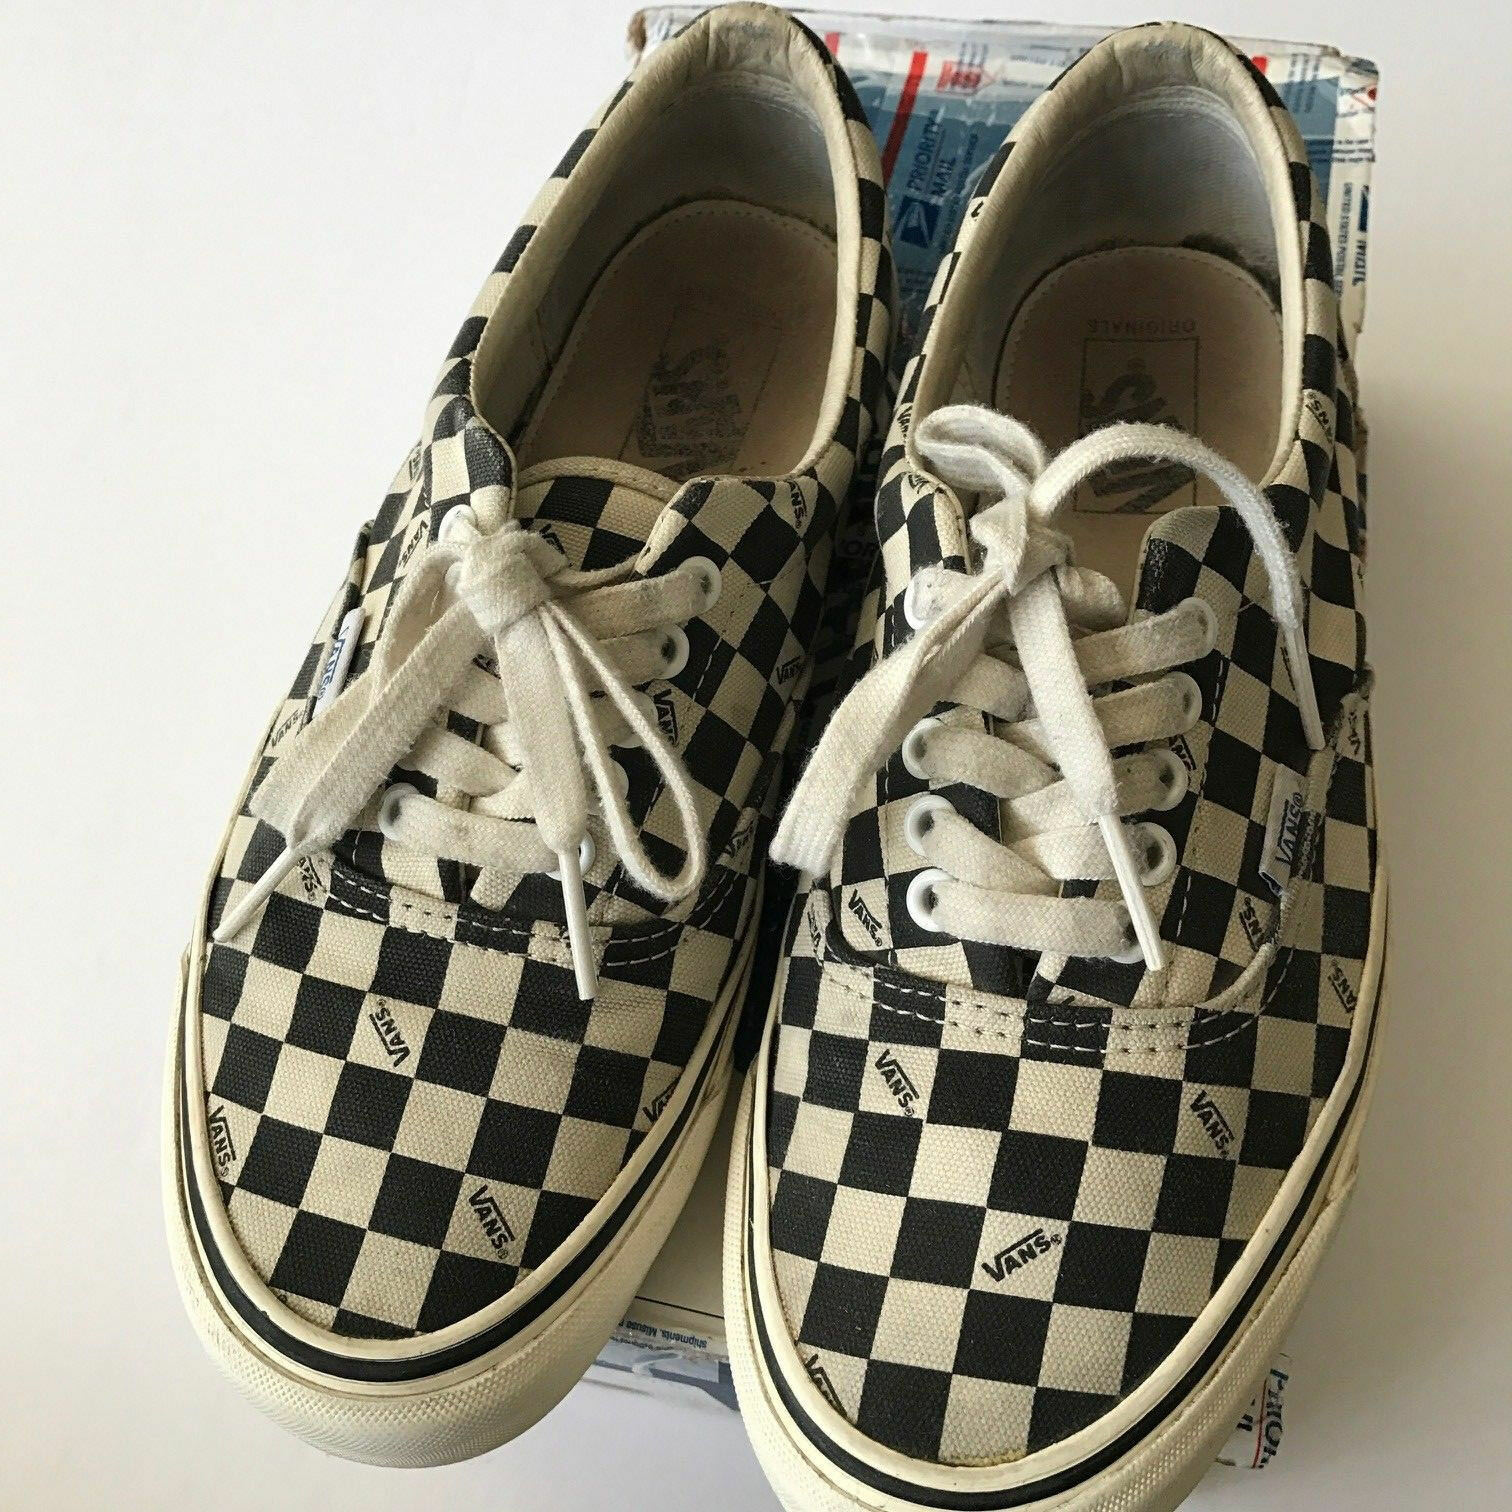 Vans Vault Checkerboard OG Era LX sz.9.5 Checkered Black White